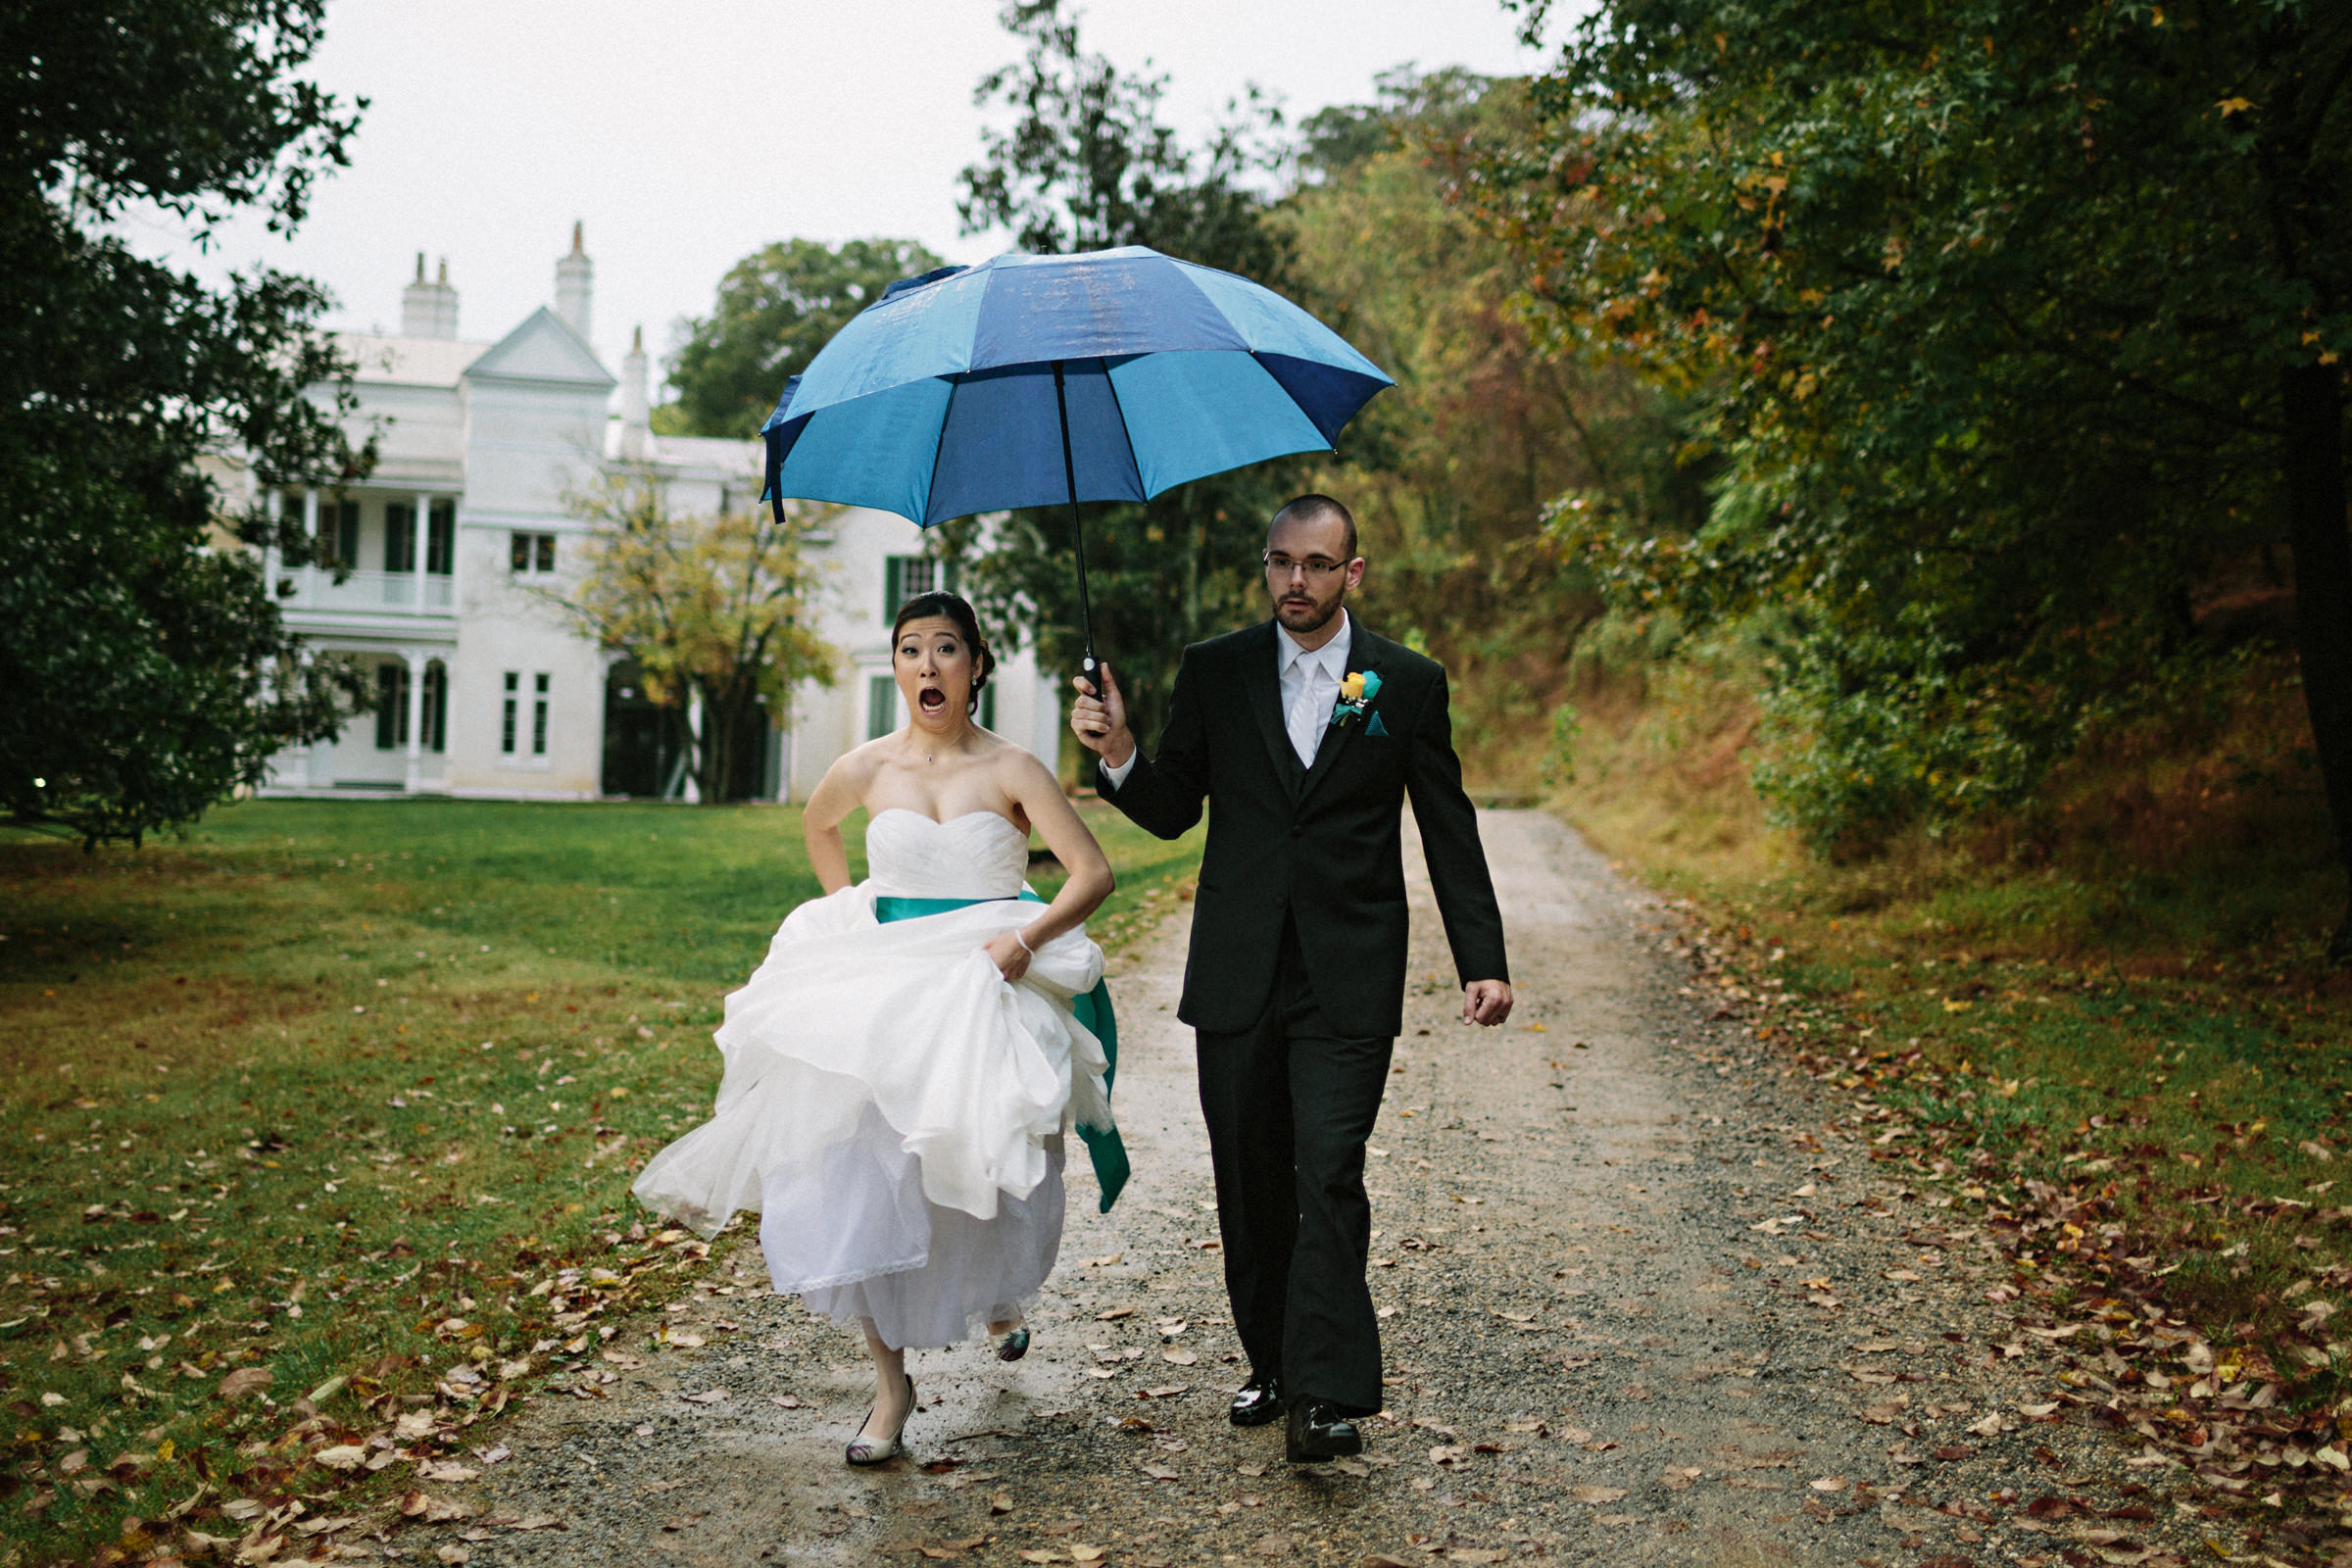 Couple with umbrella on rustic road - photo by Jonas Seaman Photography